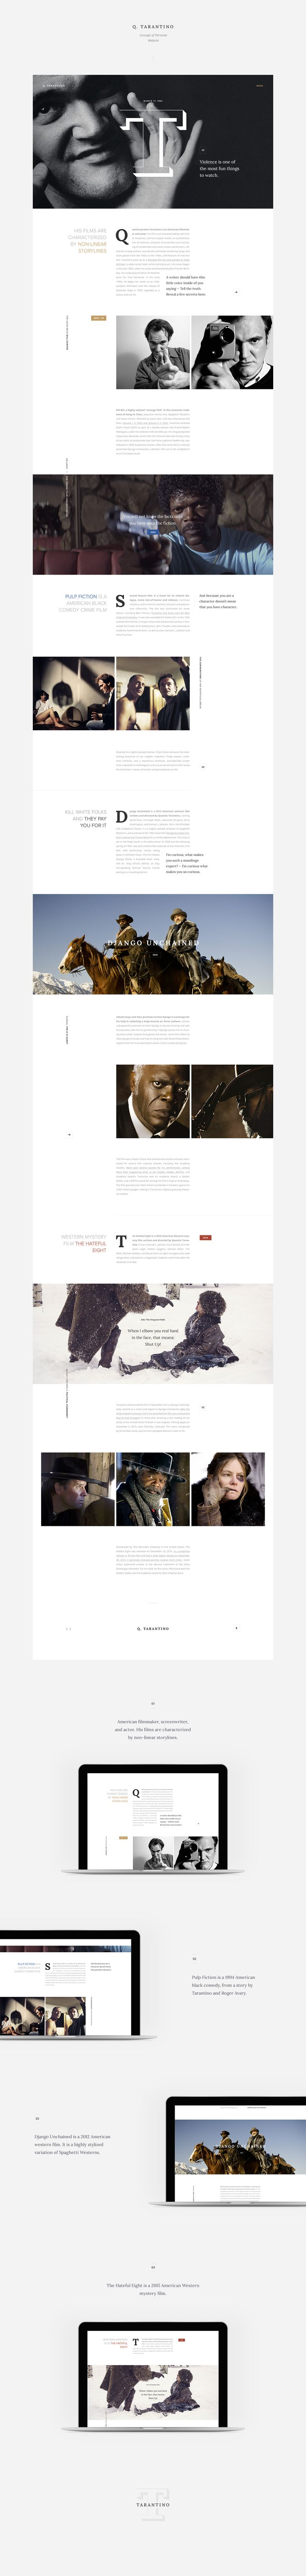 Beautiful Editorial Design for the Web | Abduzeedo Design Inspiration